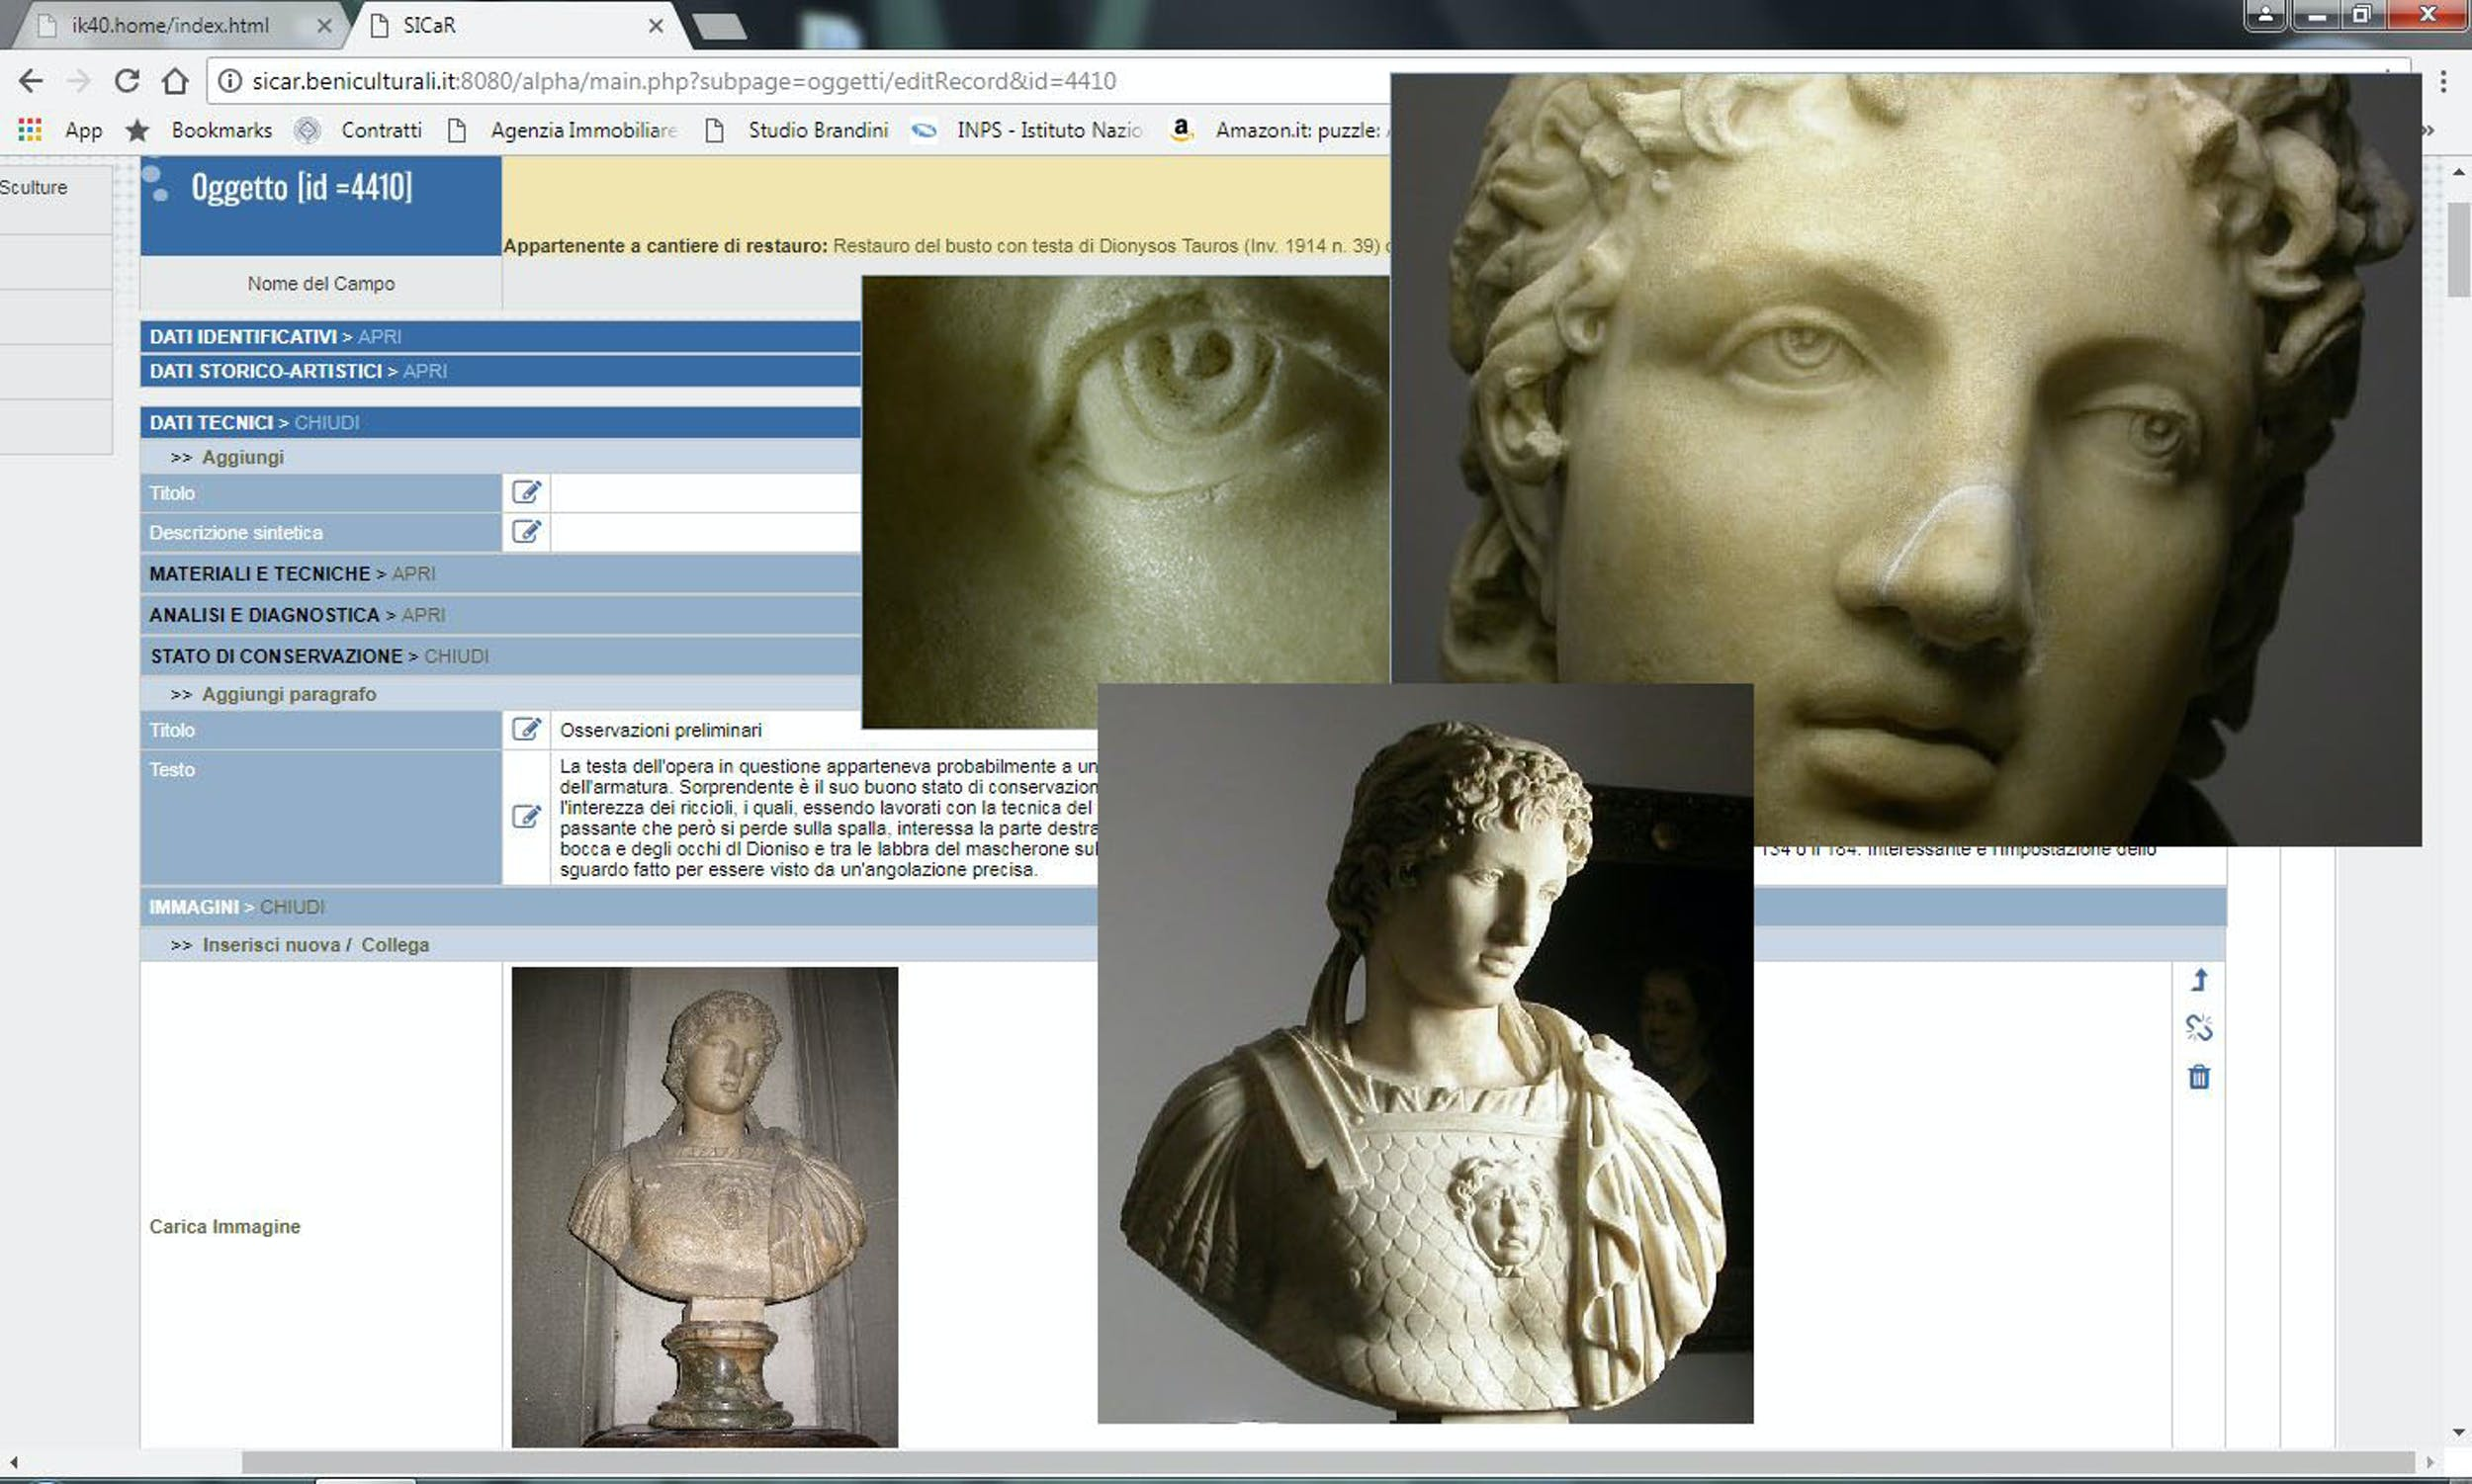 Fig. 2 Busto con testa di Dionysos Tauros (inv. 1914 n. 39), piano terra dello Scalone monumentale d'ingresso, sottoscheda Oggetto in Cantiere di restauro con immagini delle fasi dell'intervento - Bust with head of Dionysos Tauros (inv. 1914 no. 39), ground floor of the monumental staircase entrance, Restoration Object sub sheet with images of the intervention phases.